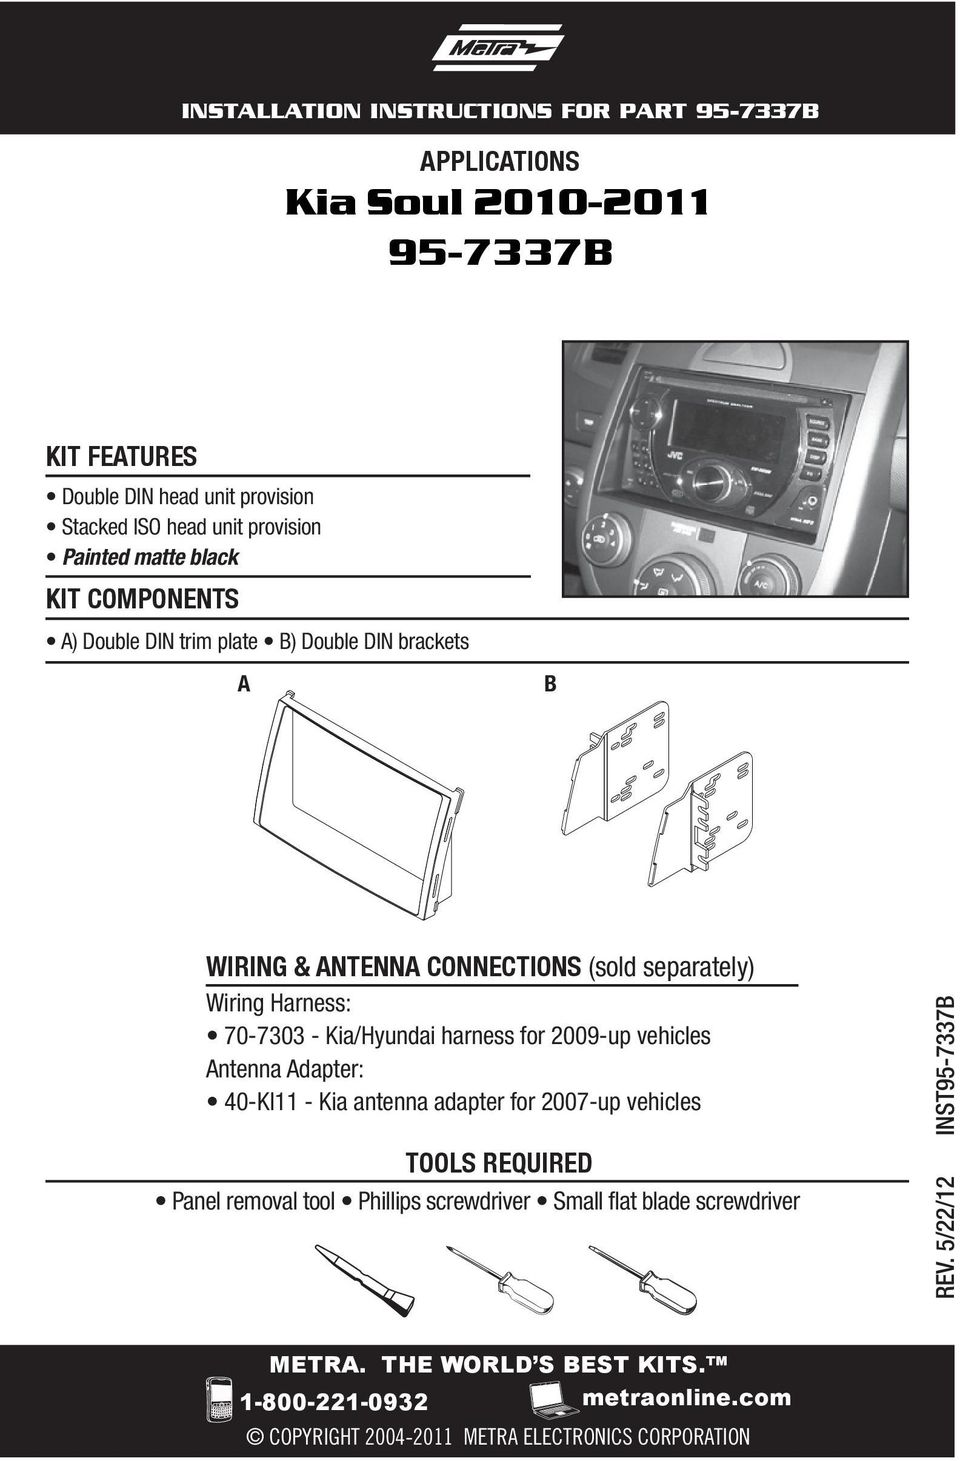 Kia/Hyundai harness for 2009-up vehicles Antenna Adapter: 40-KI11 - Kia antenna adapter for 2007-up vehicles TOOLS REQUIRED Panel removal tool Phillips